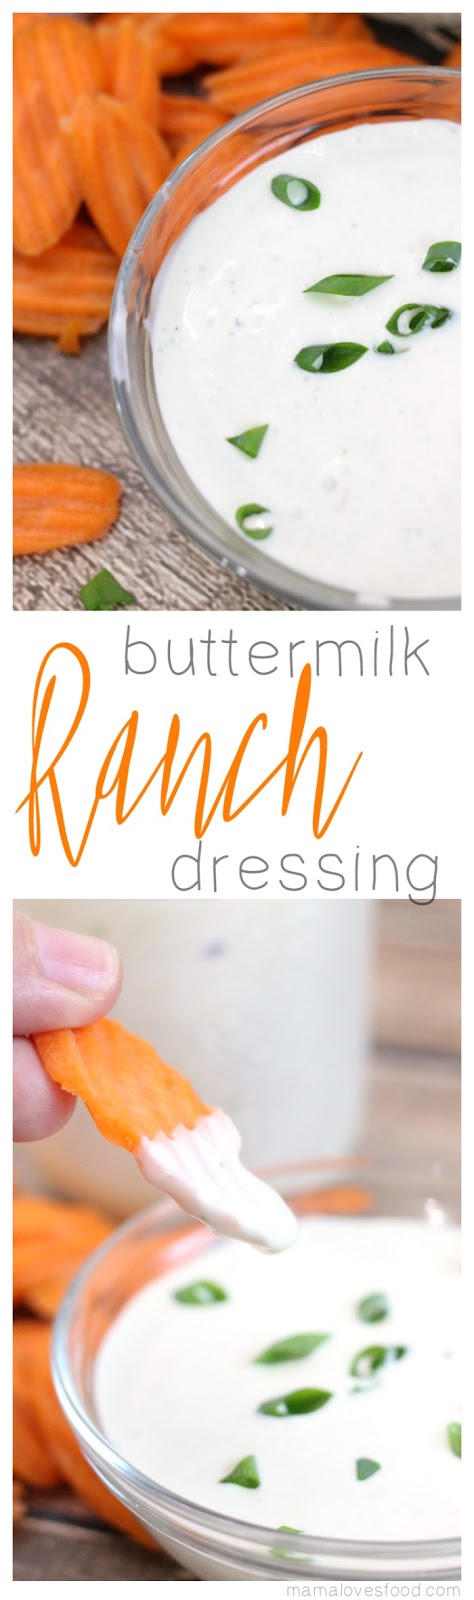 Simple Homemade Buttermilk Ranch Dressing Recipe